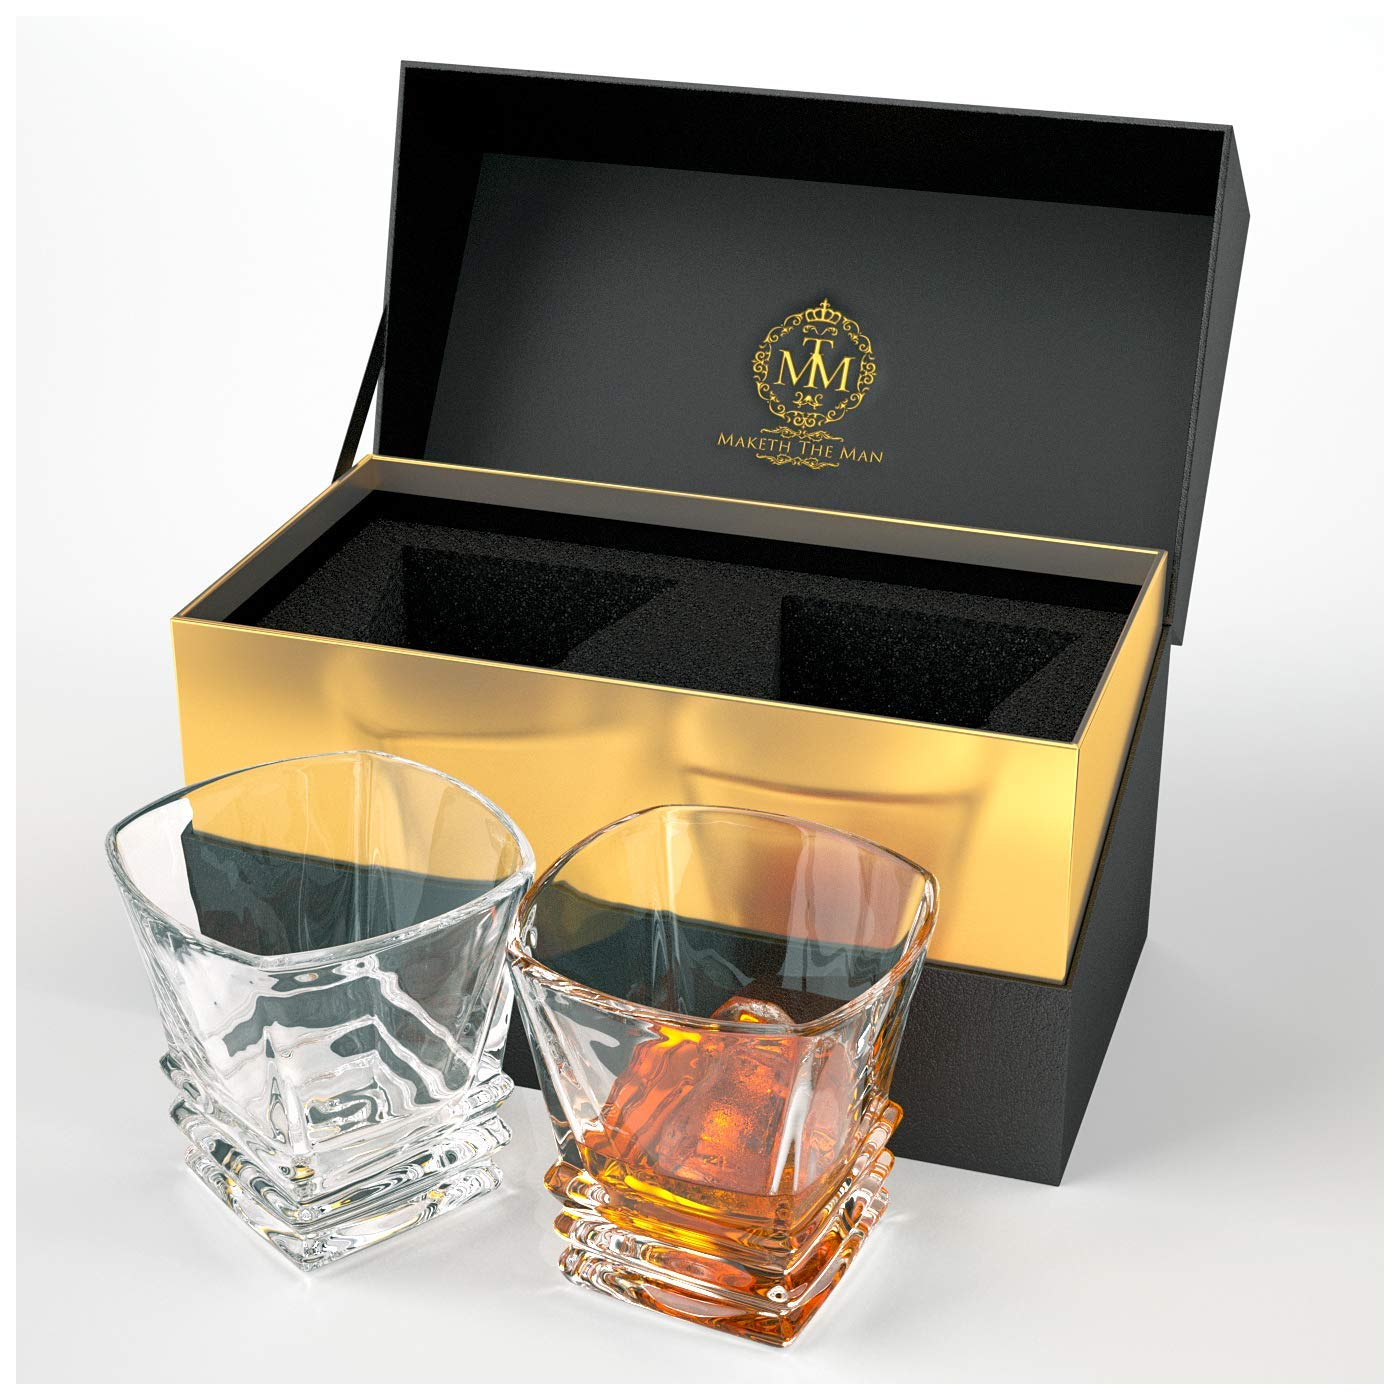 Premium Art Deco Whiskey Glass Set. 10oz Bourbon Glasses In Stylish Gift Box. Genuine Lead Free Crystal Scotch Glasses Designed In Europe. 2 Double Old Fashioned Rocks Glasses For Liquor And Alcohol.